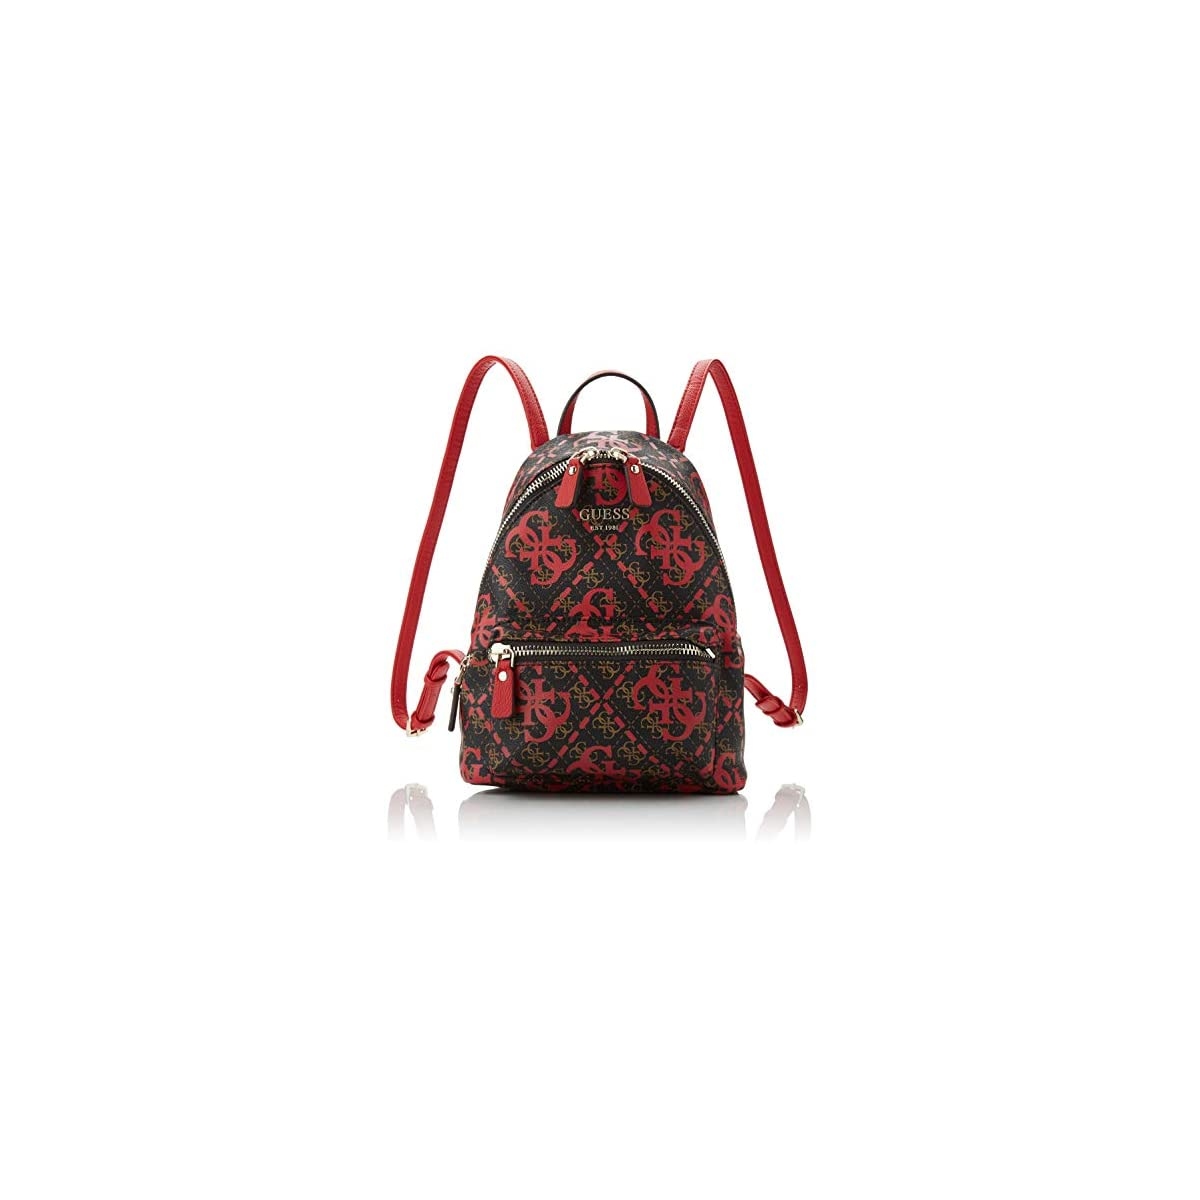 51AMYyUJByL. SS1200  - Guess - Leeza Backpack, Mujer, Multicolor (Red Multi), 22x29x10.5 cm (W x H L)